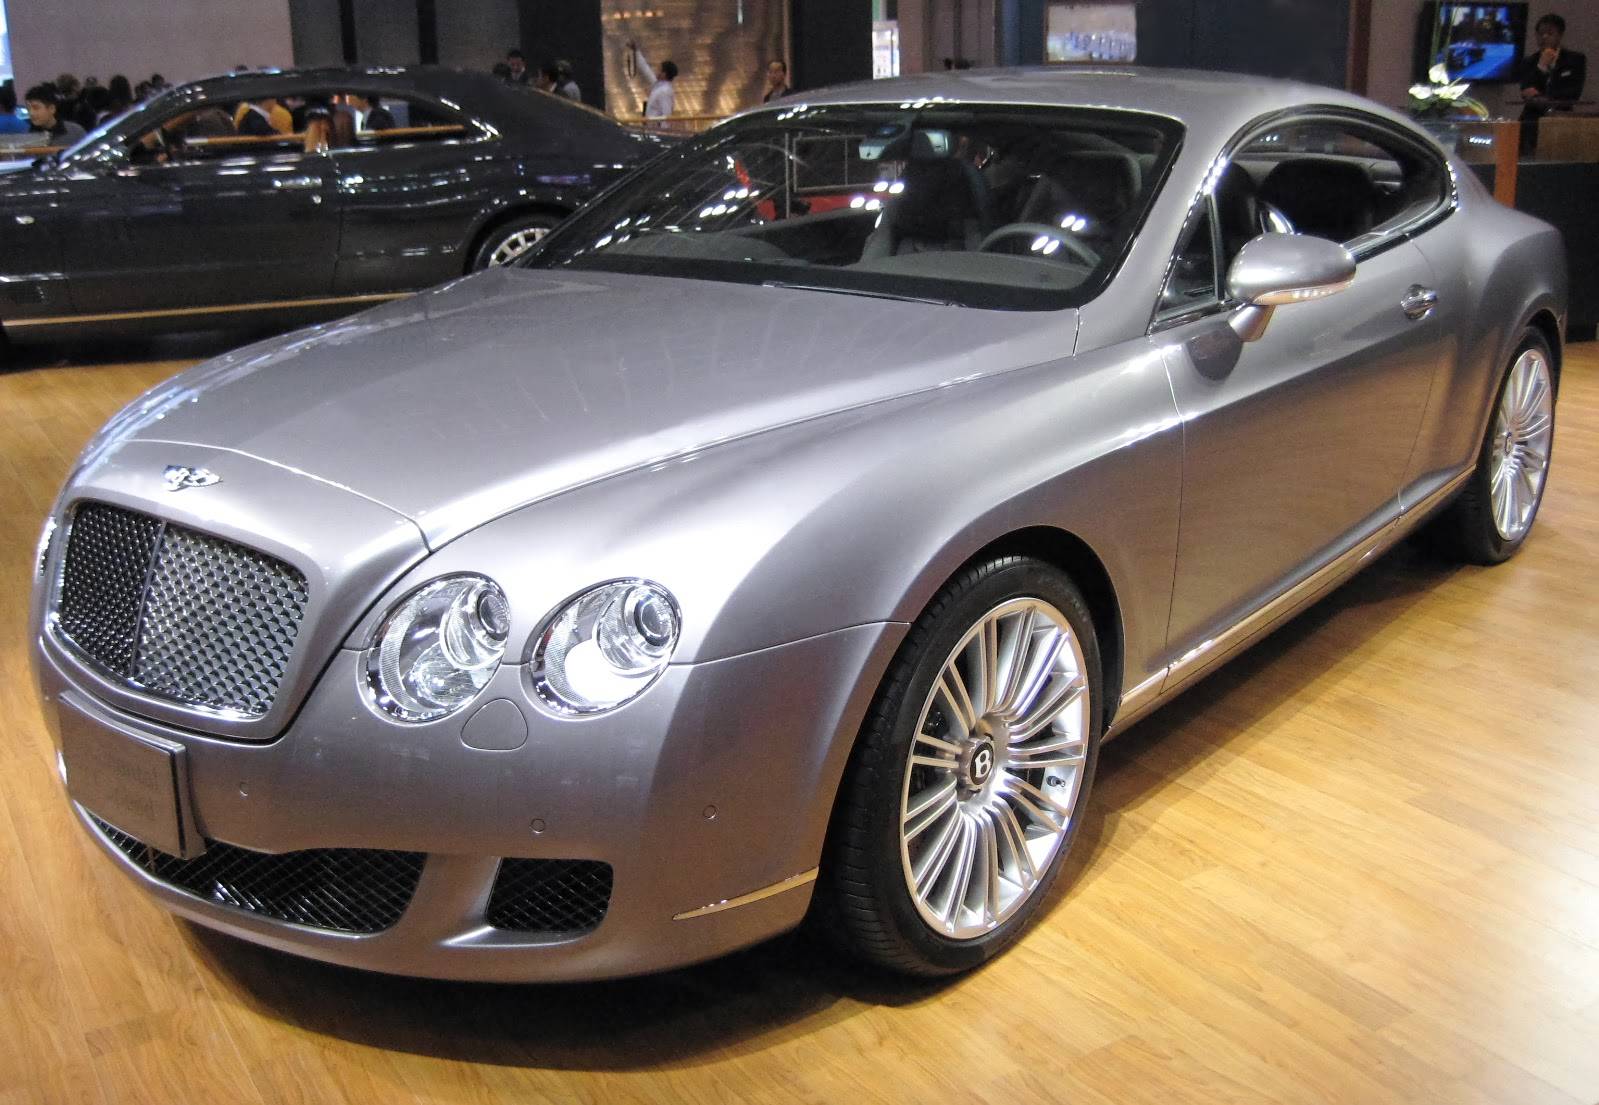 sun a espa spain alquiler car bentley cars continental ispanii bentli bently gt price arenda v st rent cabrio reny